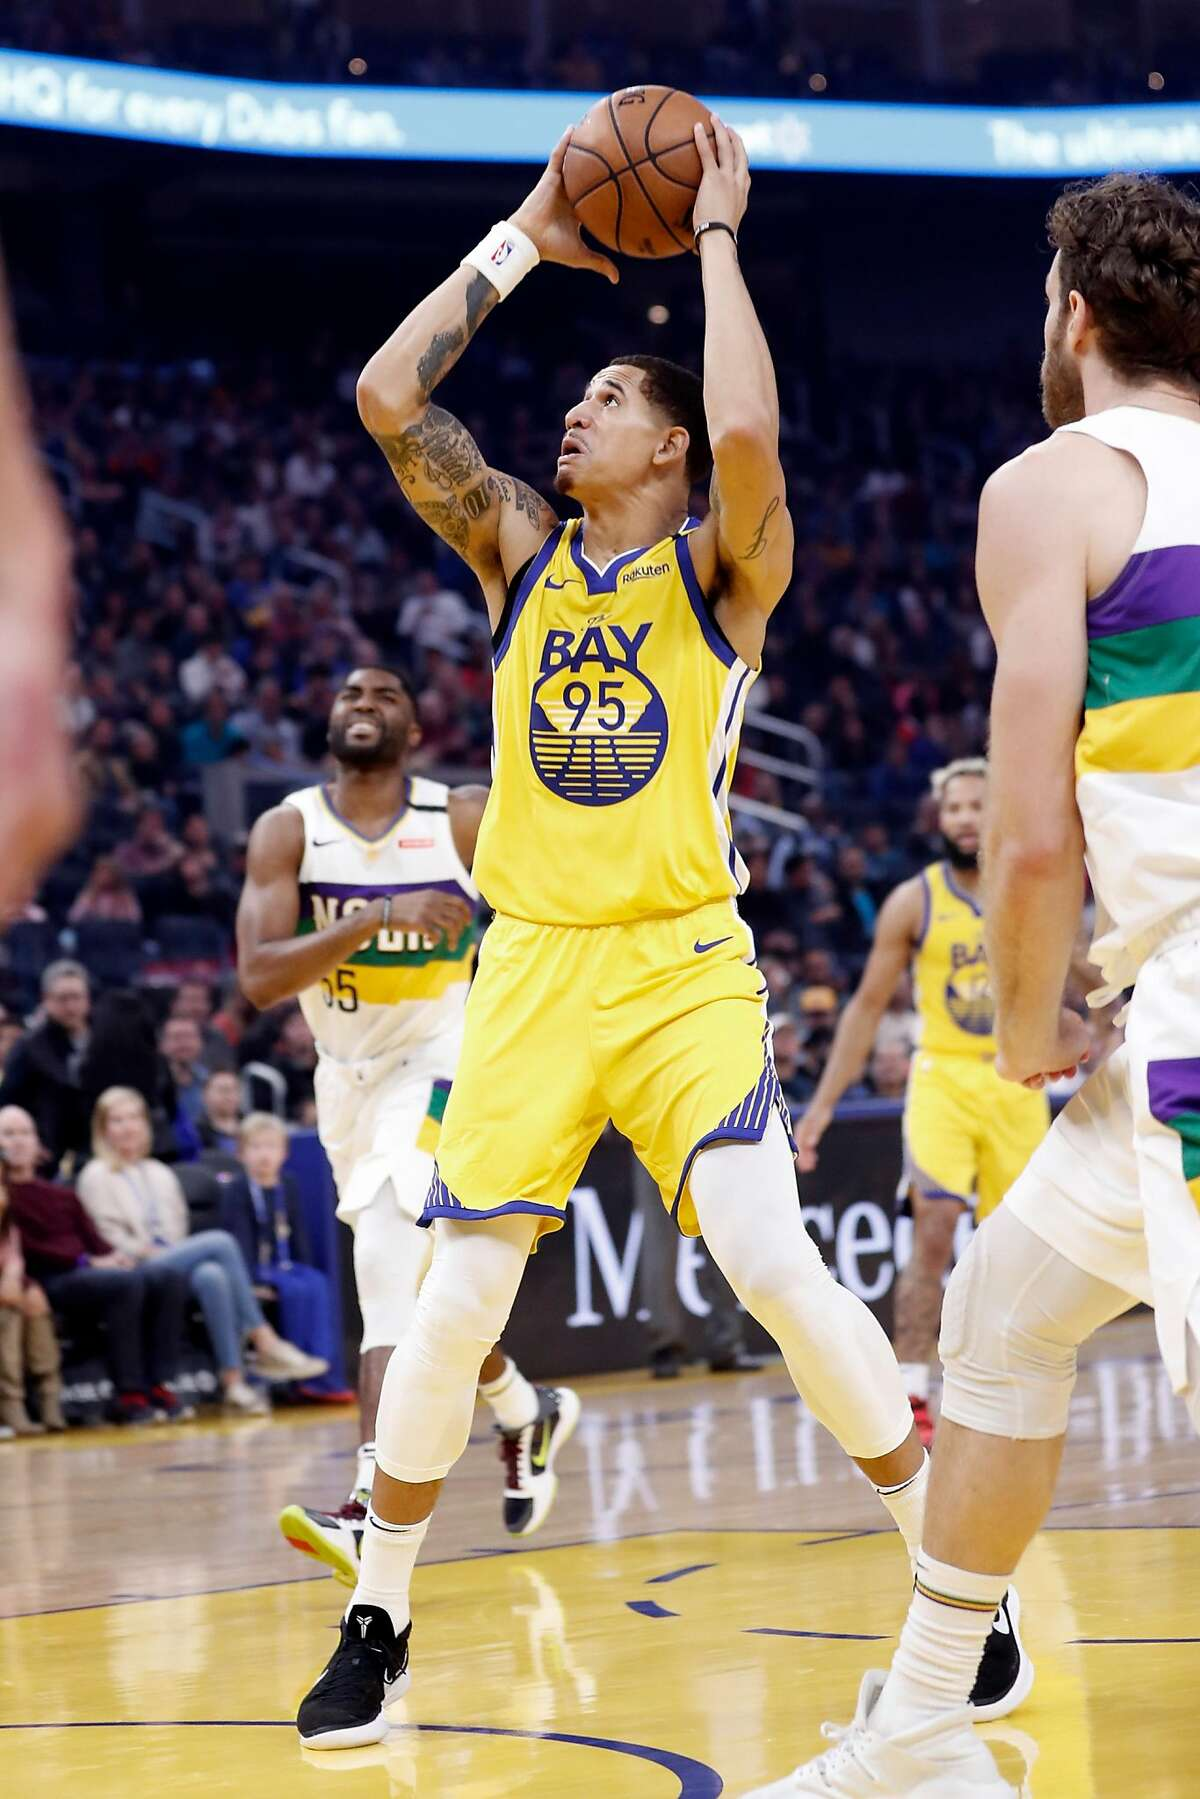 Golden State Warriors' Juan Toscano-Anderson looks to score against New Orleans Pelicans' during Pelicans' 115-101 win in NBA game at Chase Center in San Francisco, Calif., on Sunday, February 23, 2020.